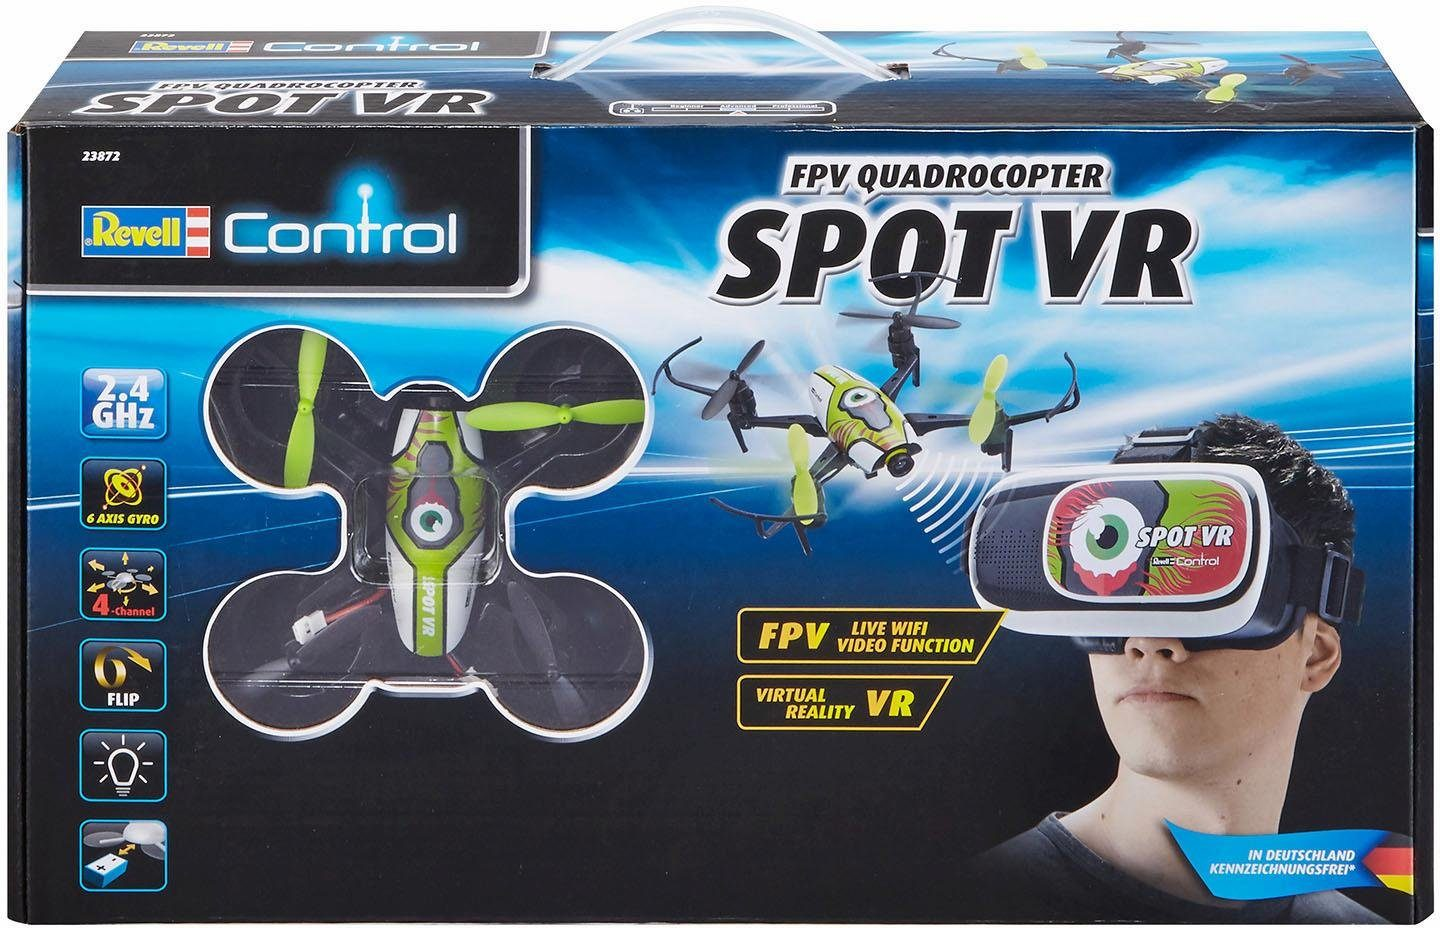 Revell RC Quadrocopter mit Kamera für Virtual Reality, »Revell® control, Spot VR, 2,4 GHz«